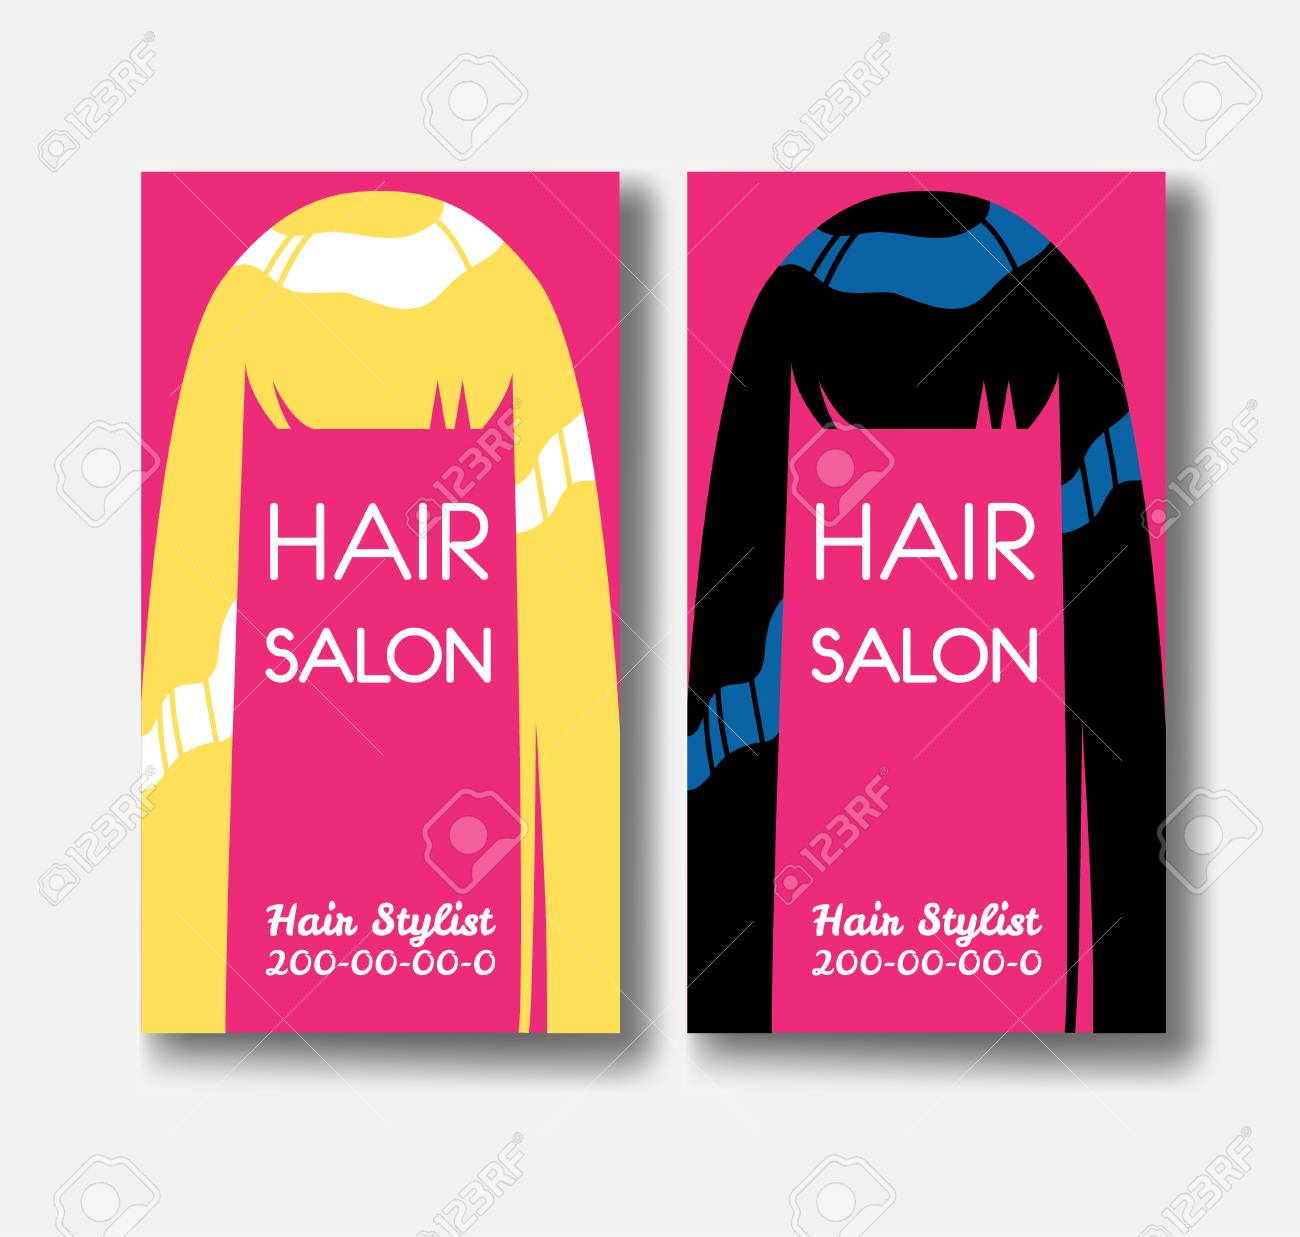 Hair salon business card templates with blonde hair and black hair salon business card templates with blonde hair and black ha stock vector 78080045 fbccfo Image collections